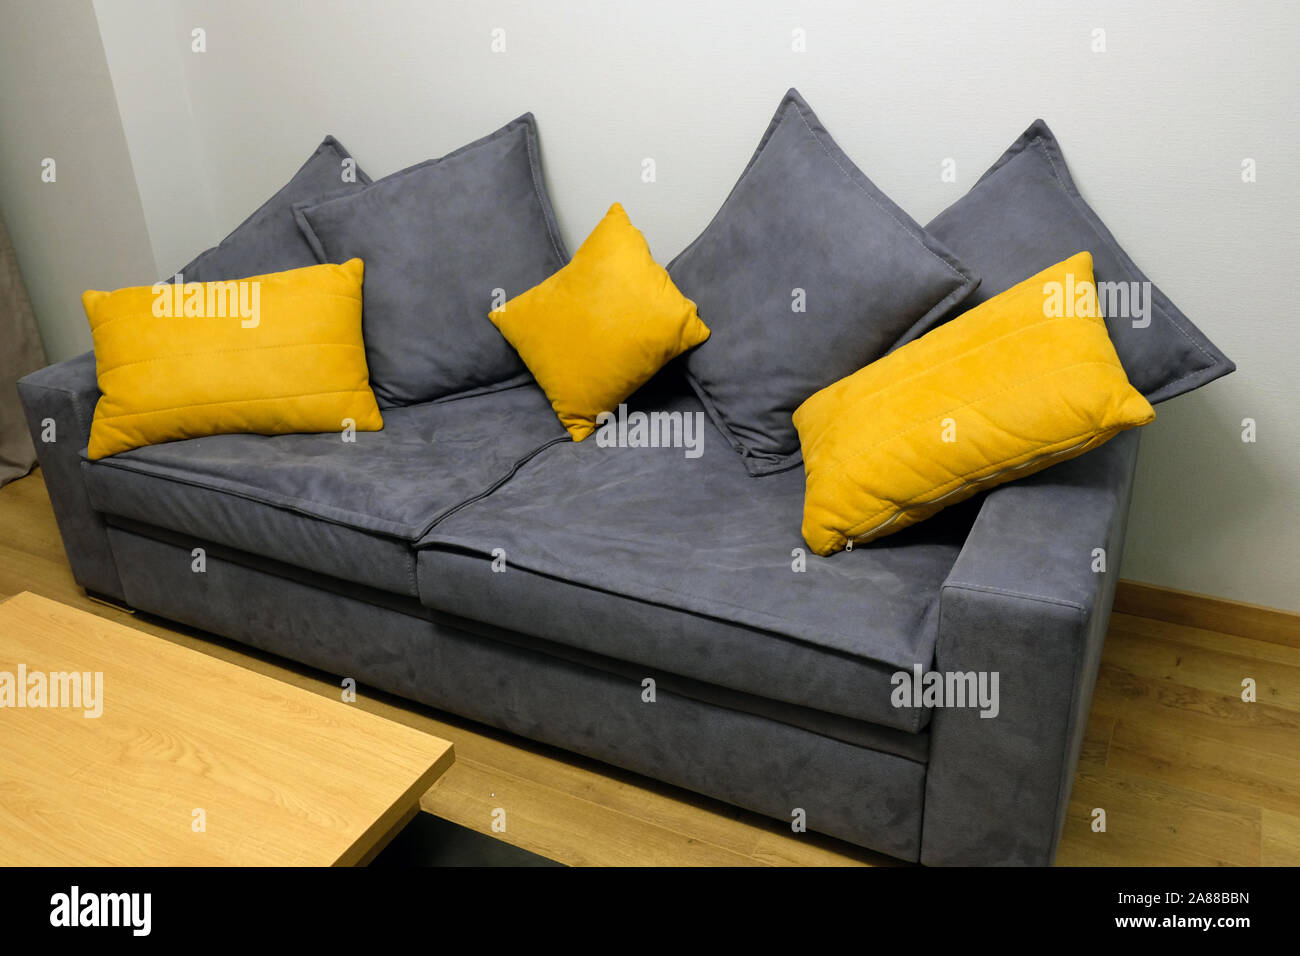 Grey Big Sofa With Yellow And Grey Pillows The Couch In The Room Is Close Up Stock Photo Alamy